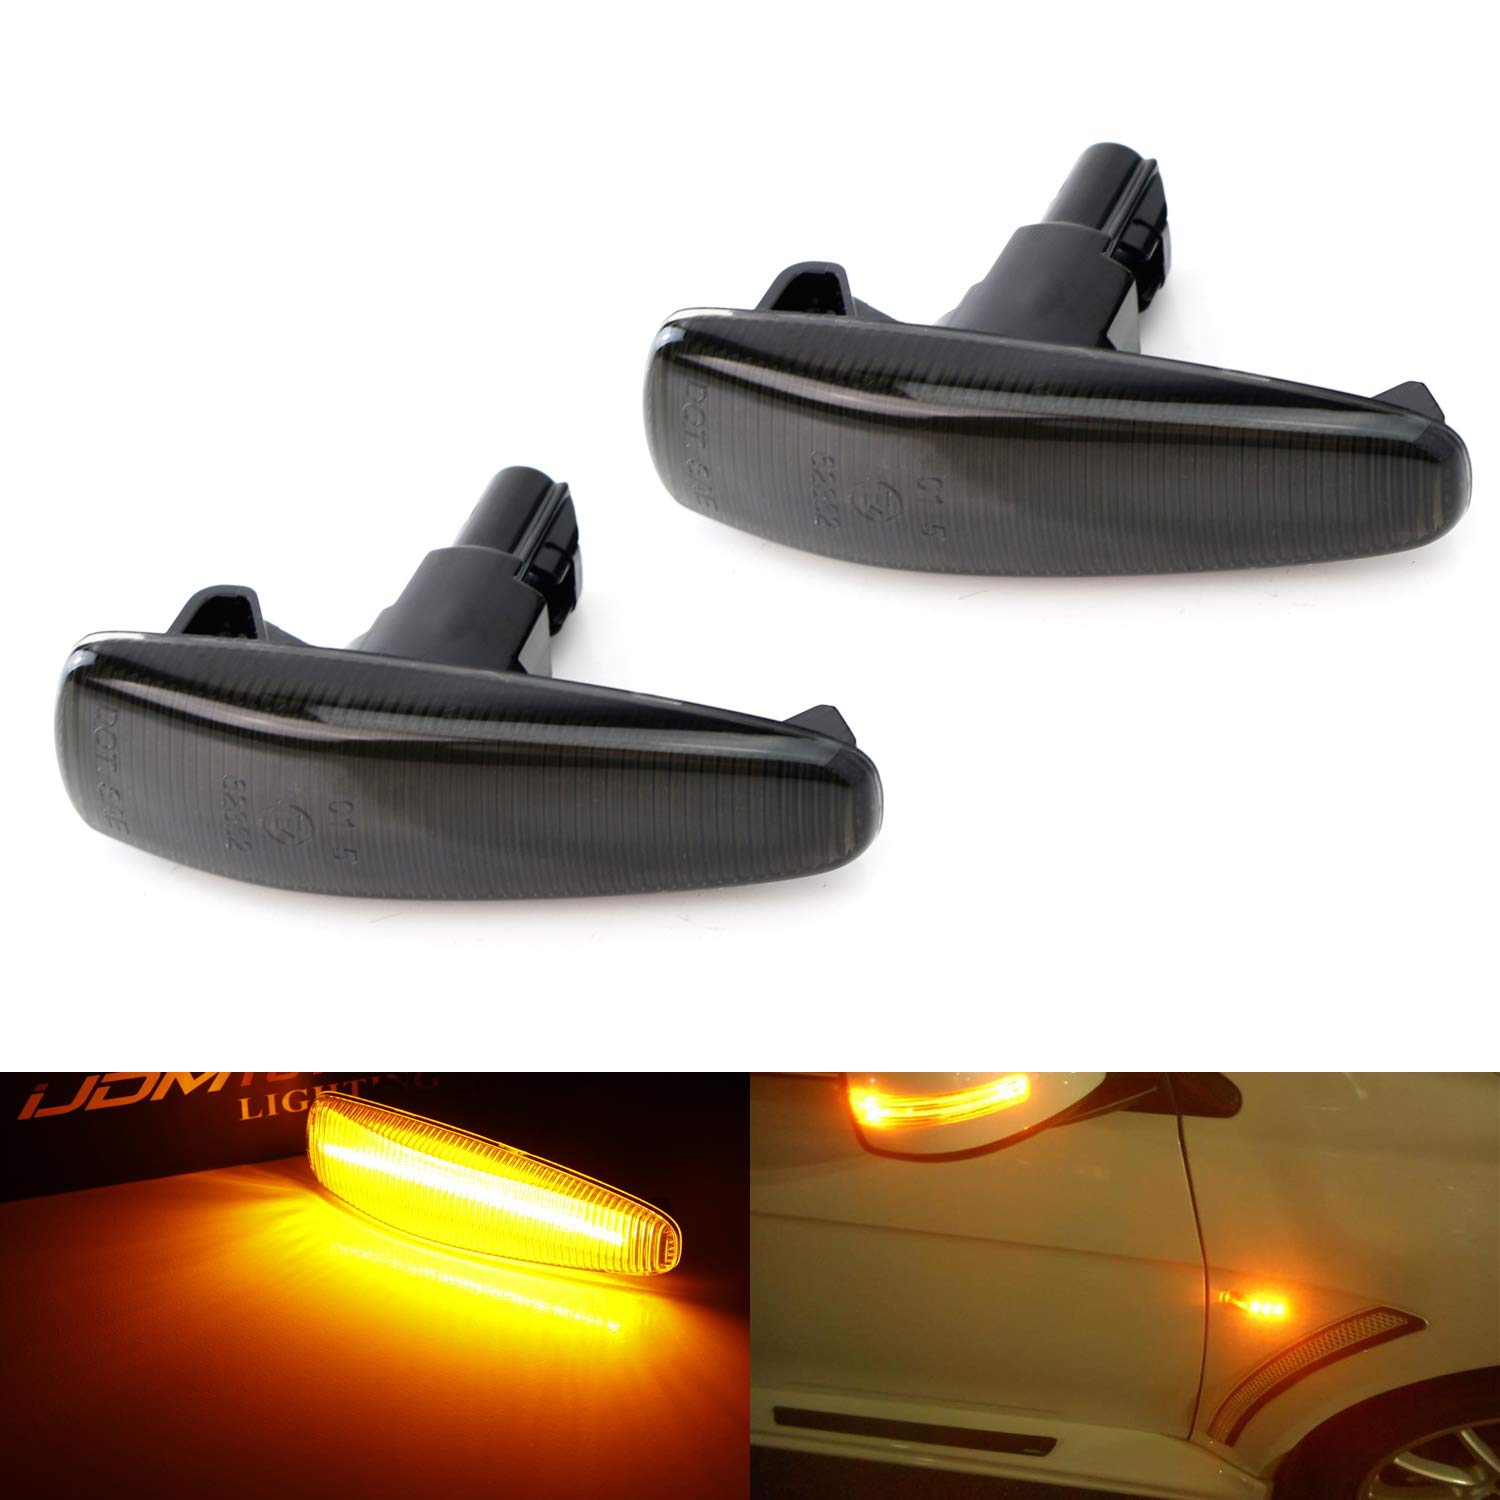 iJDMTOY Smoked Lens Amber Full LED Front Side Marker Lights For Mistubishi Lancer Evo X Mirage Outlander Sport, Powered by 36-SMD LED, Replace OEM Sidemarker Lamps iJDMTOY Auto Accessories Change Left/Right Original Lamp Assembly